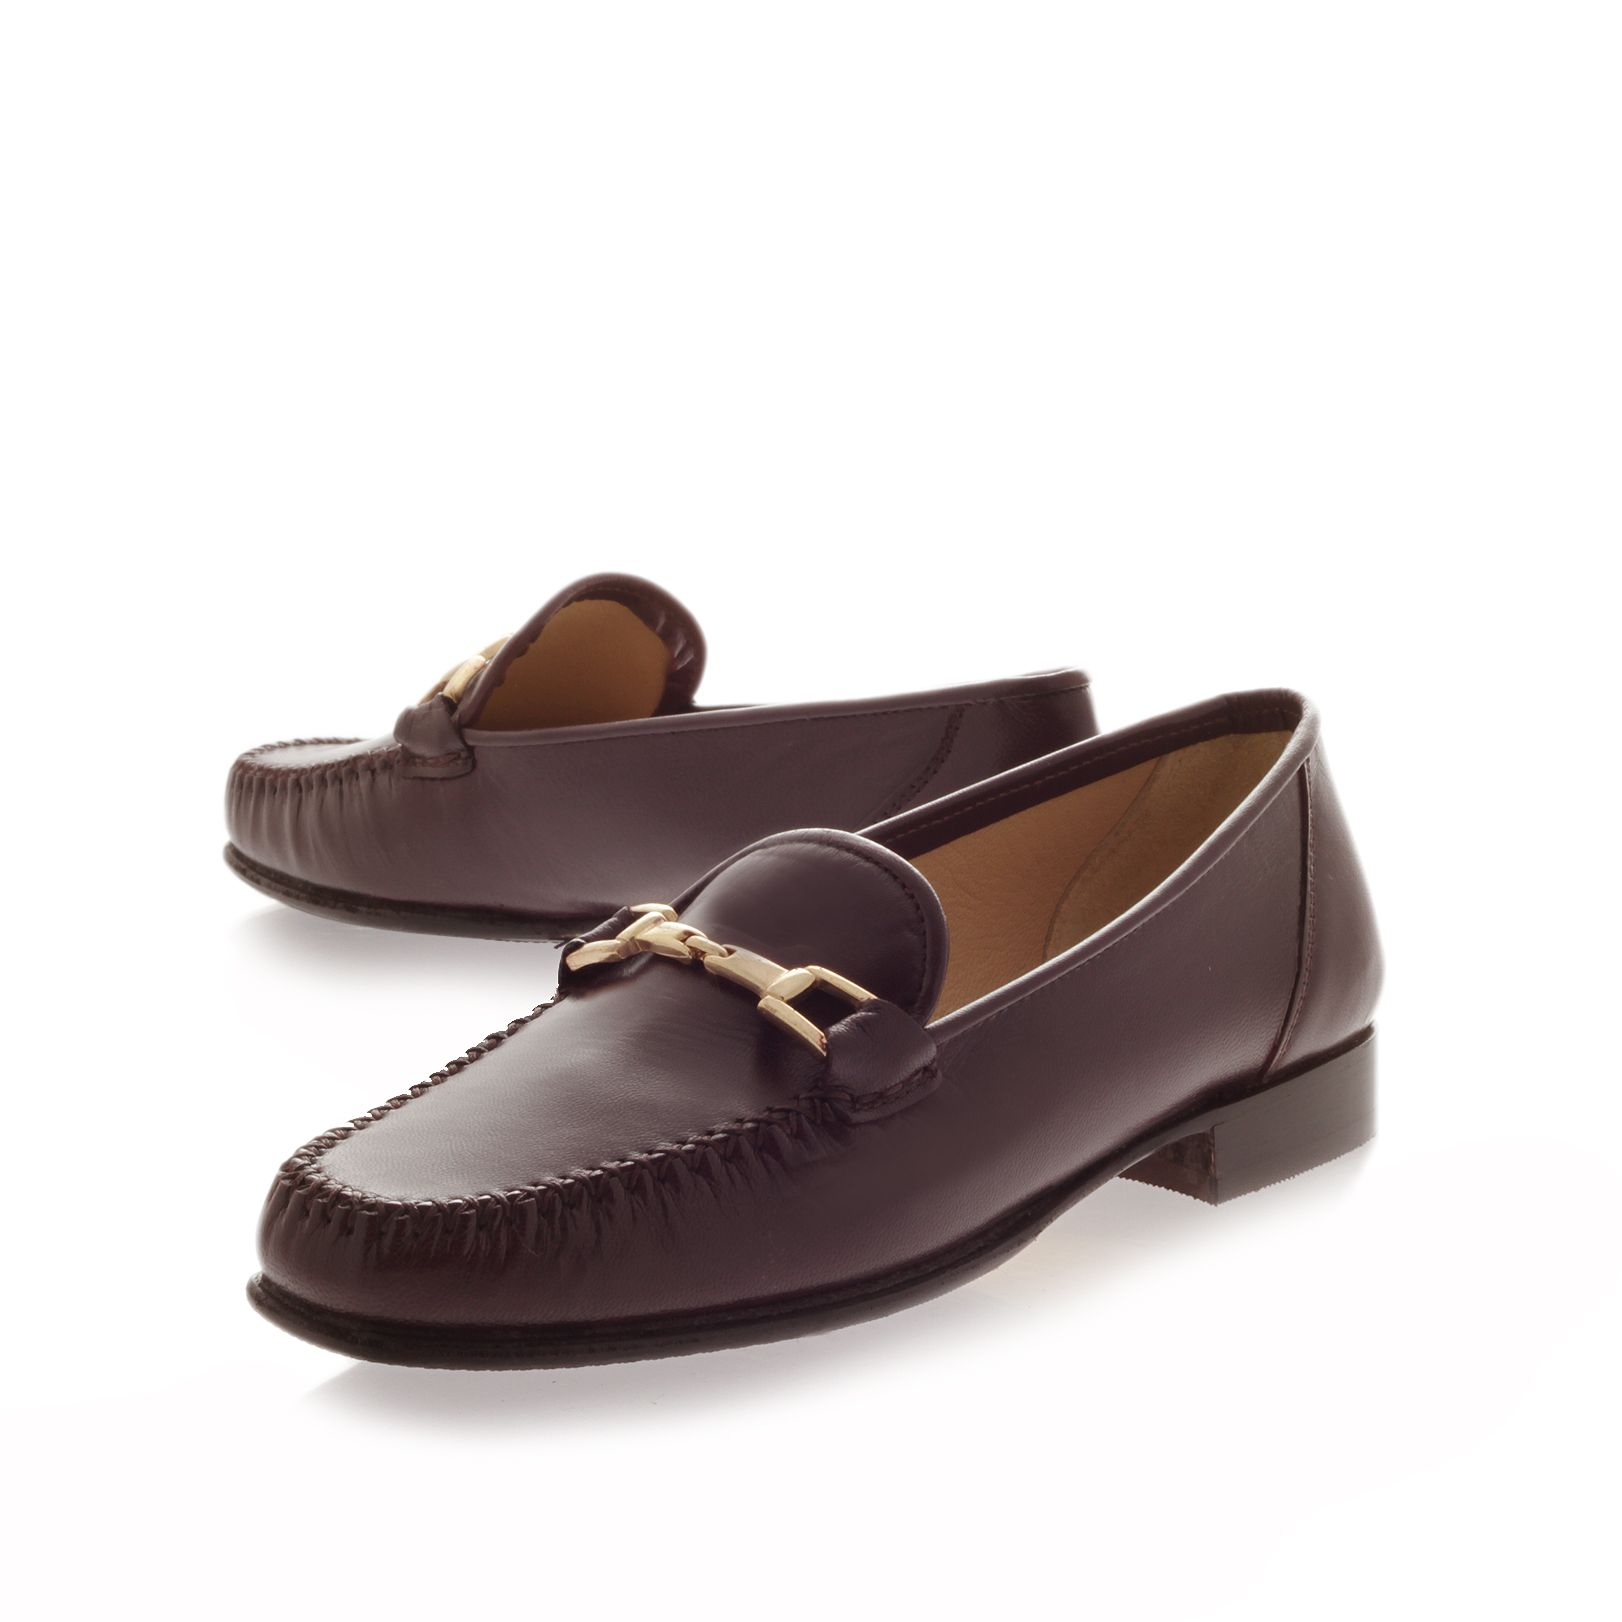 Mariner loafer shoes